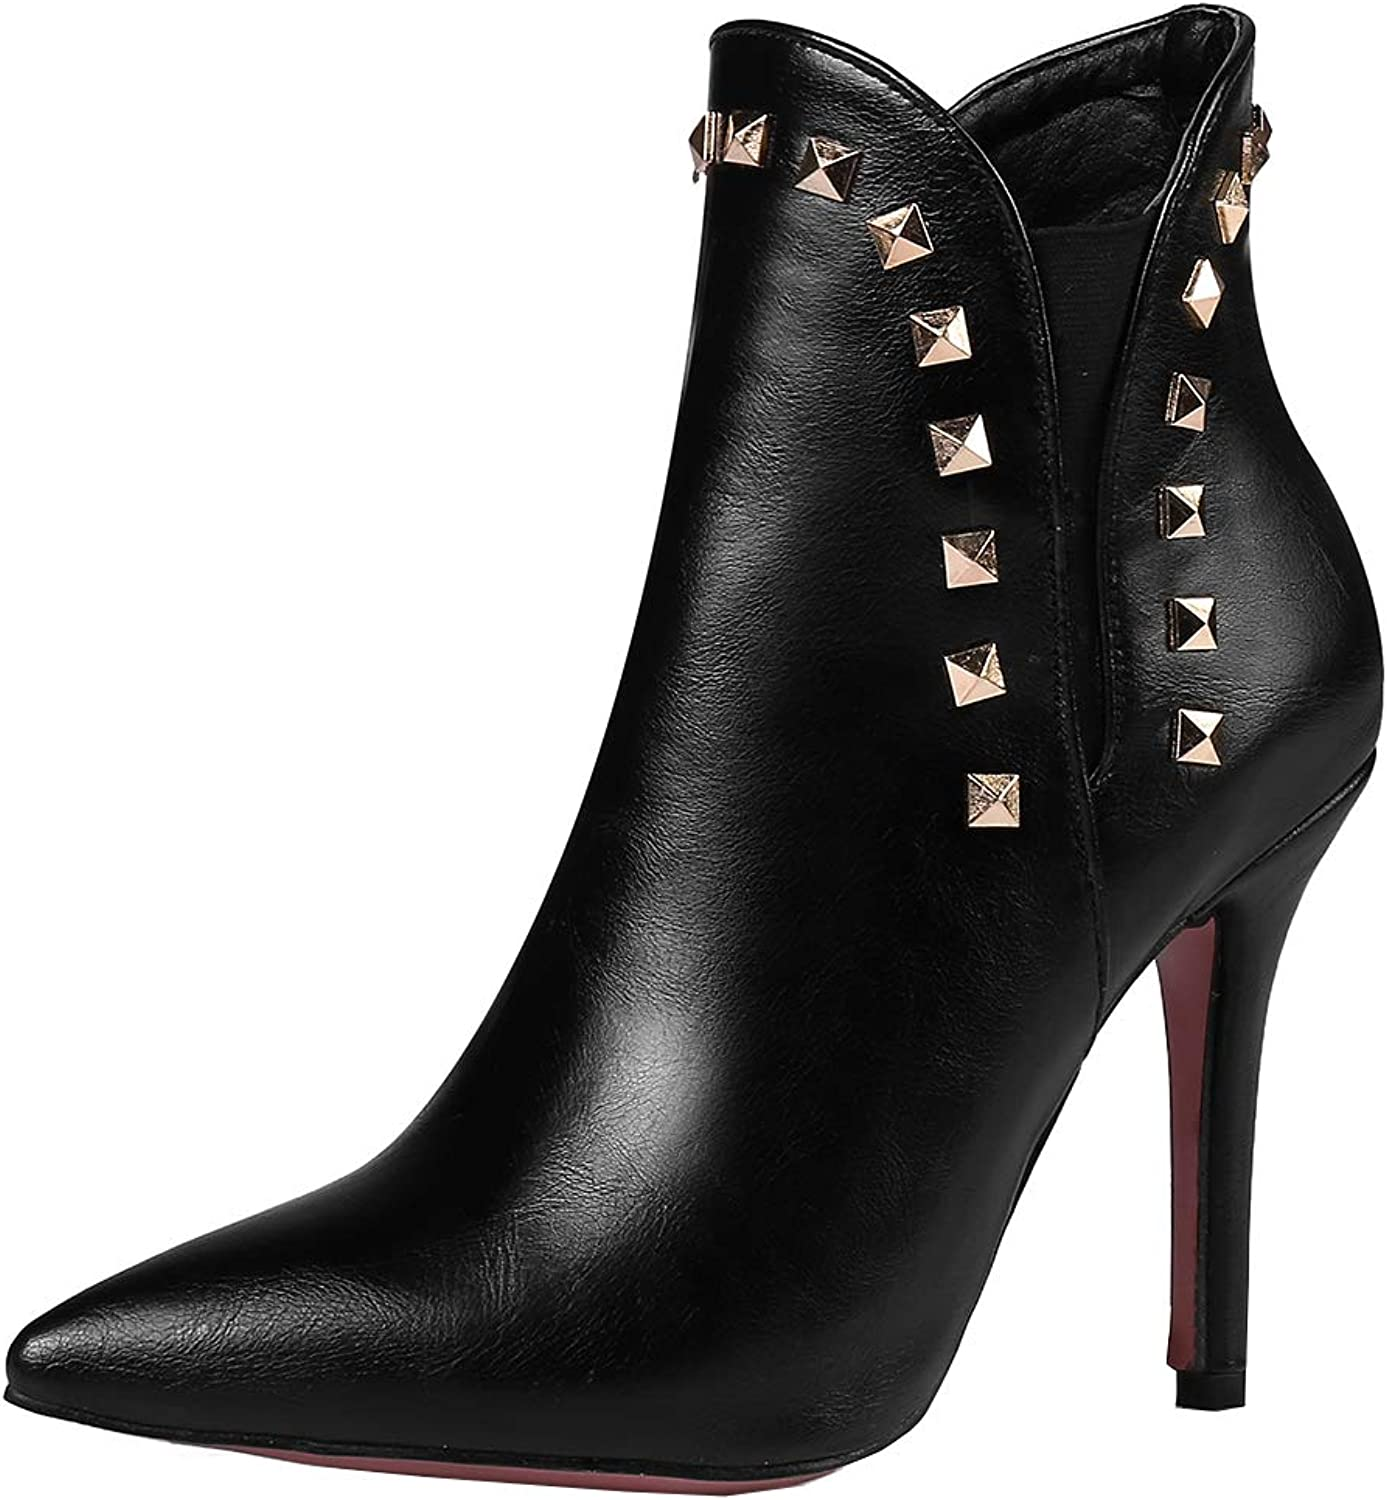 Kikiva Womens High Heel Stiletto Ankle Boots Pointed Toe Short Booties with Studded